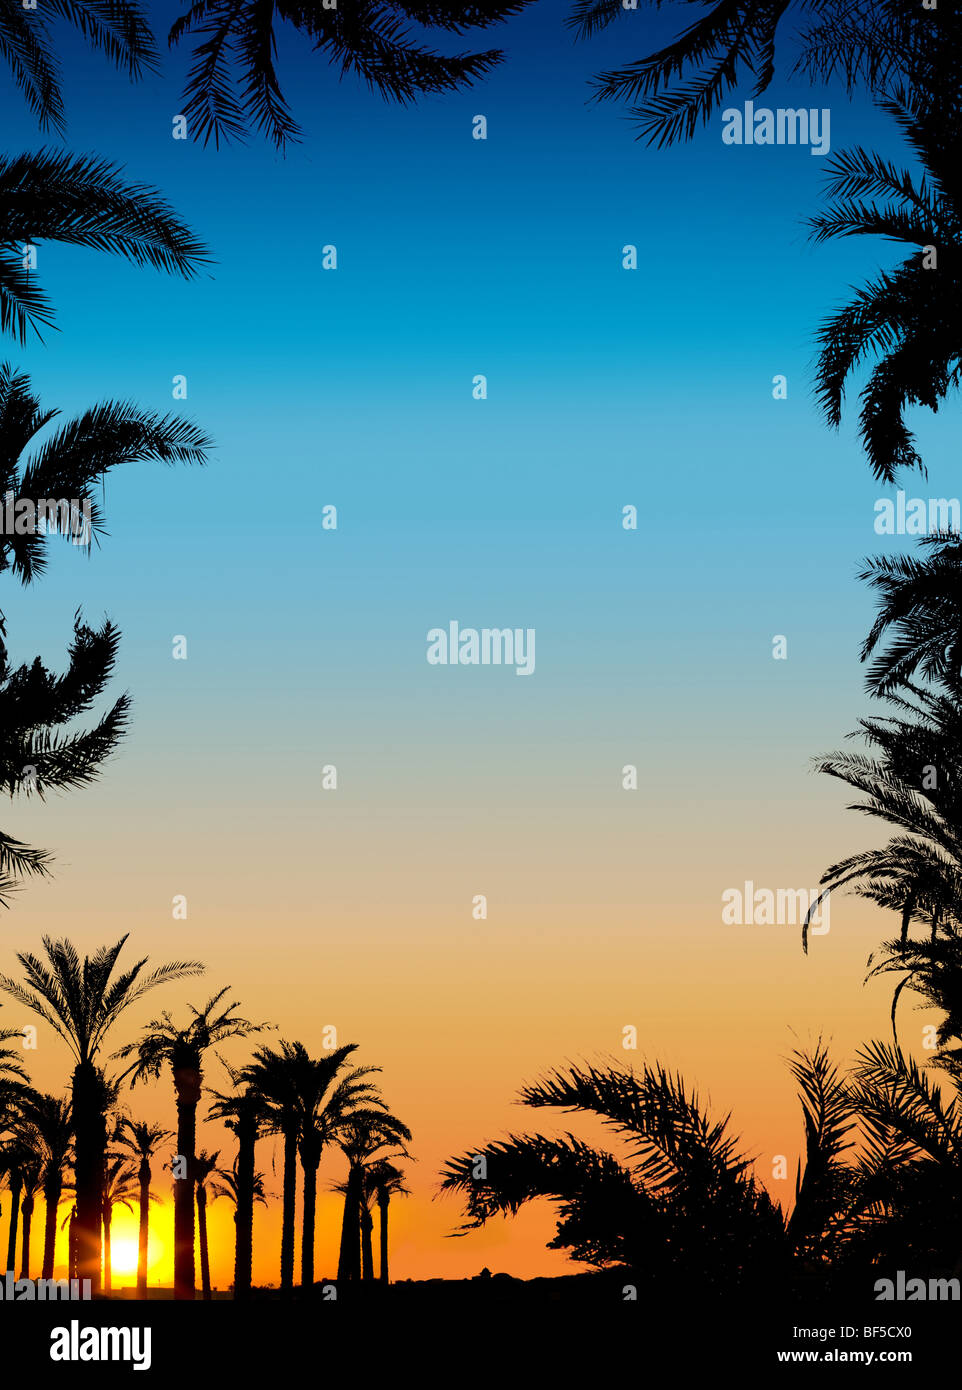 The silhouettes of palms on beautiful sunset background Stock Photo